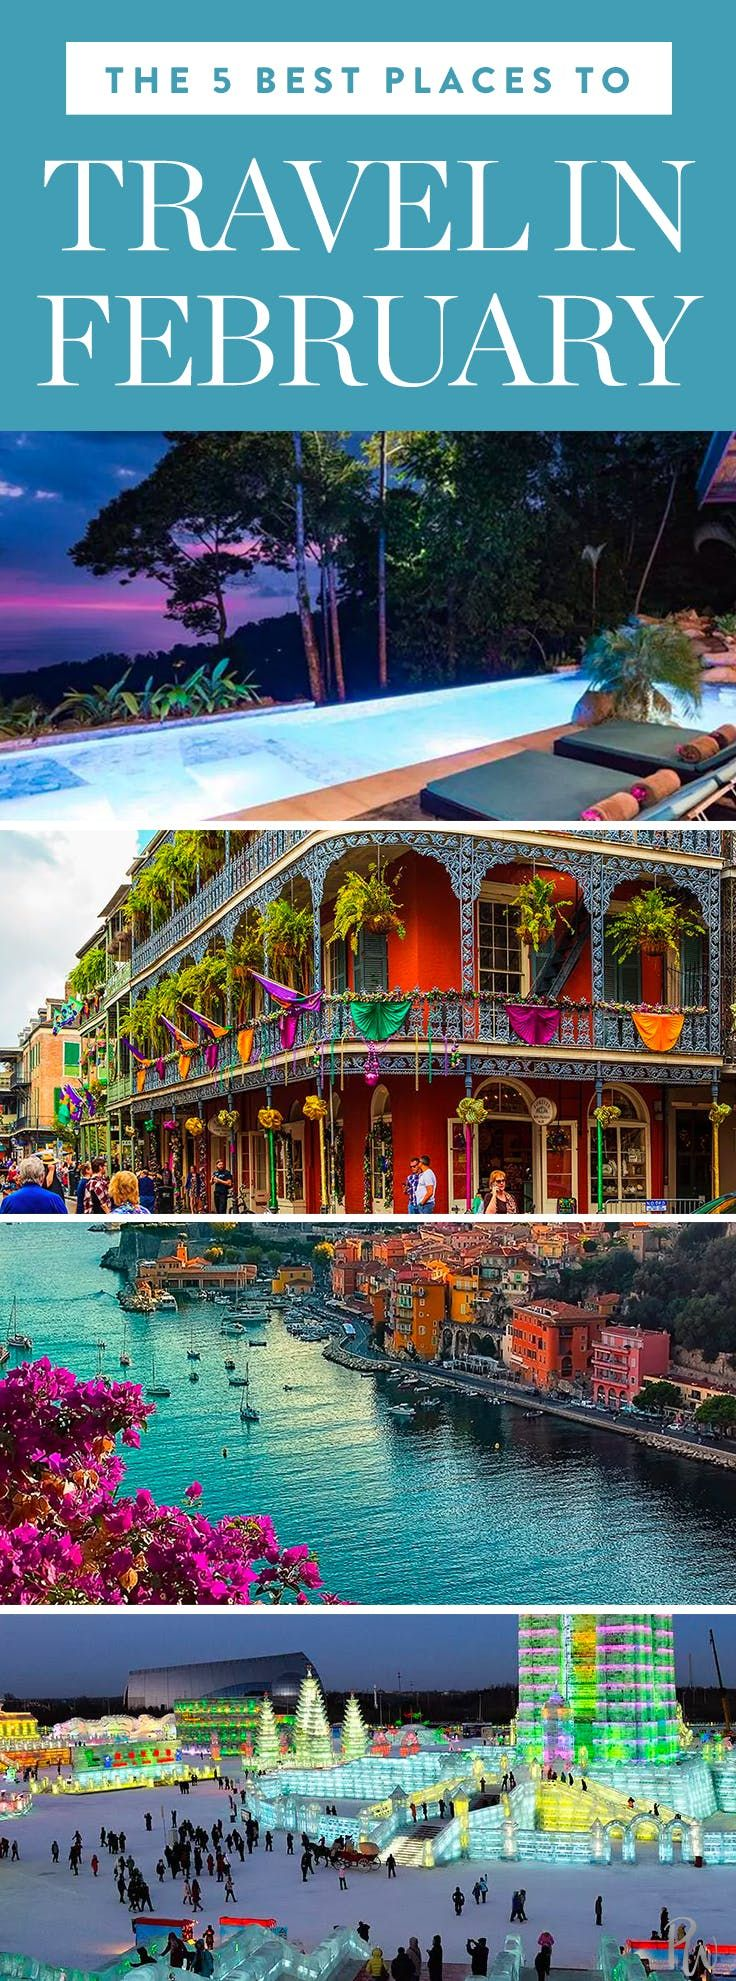 The 5 Best Places to Travel in February  Best places to travel, Best places to vacation, Usa